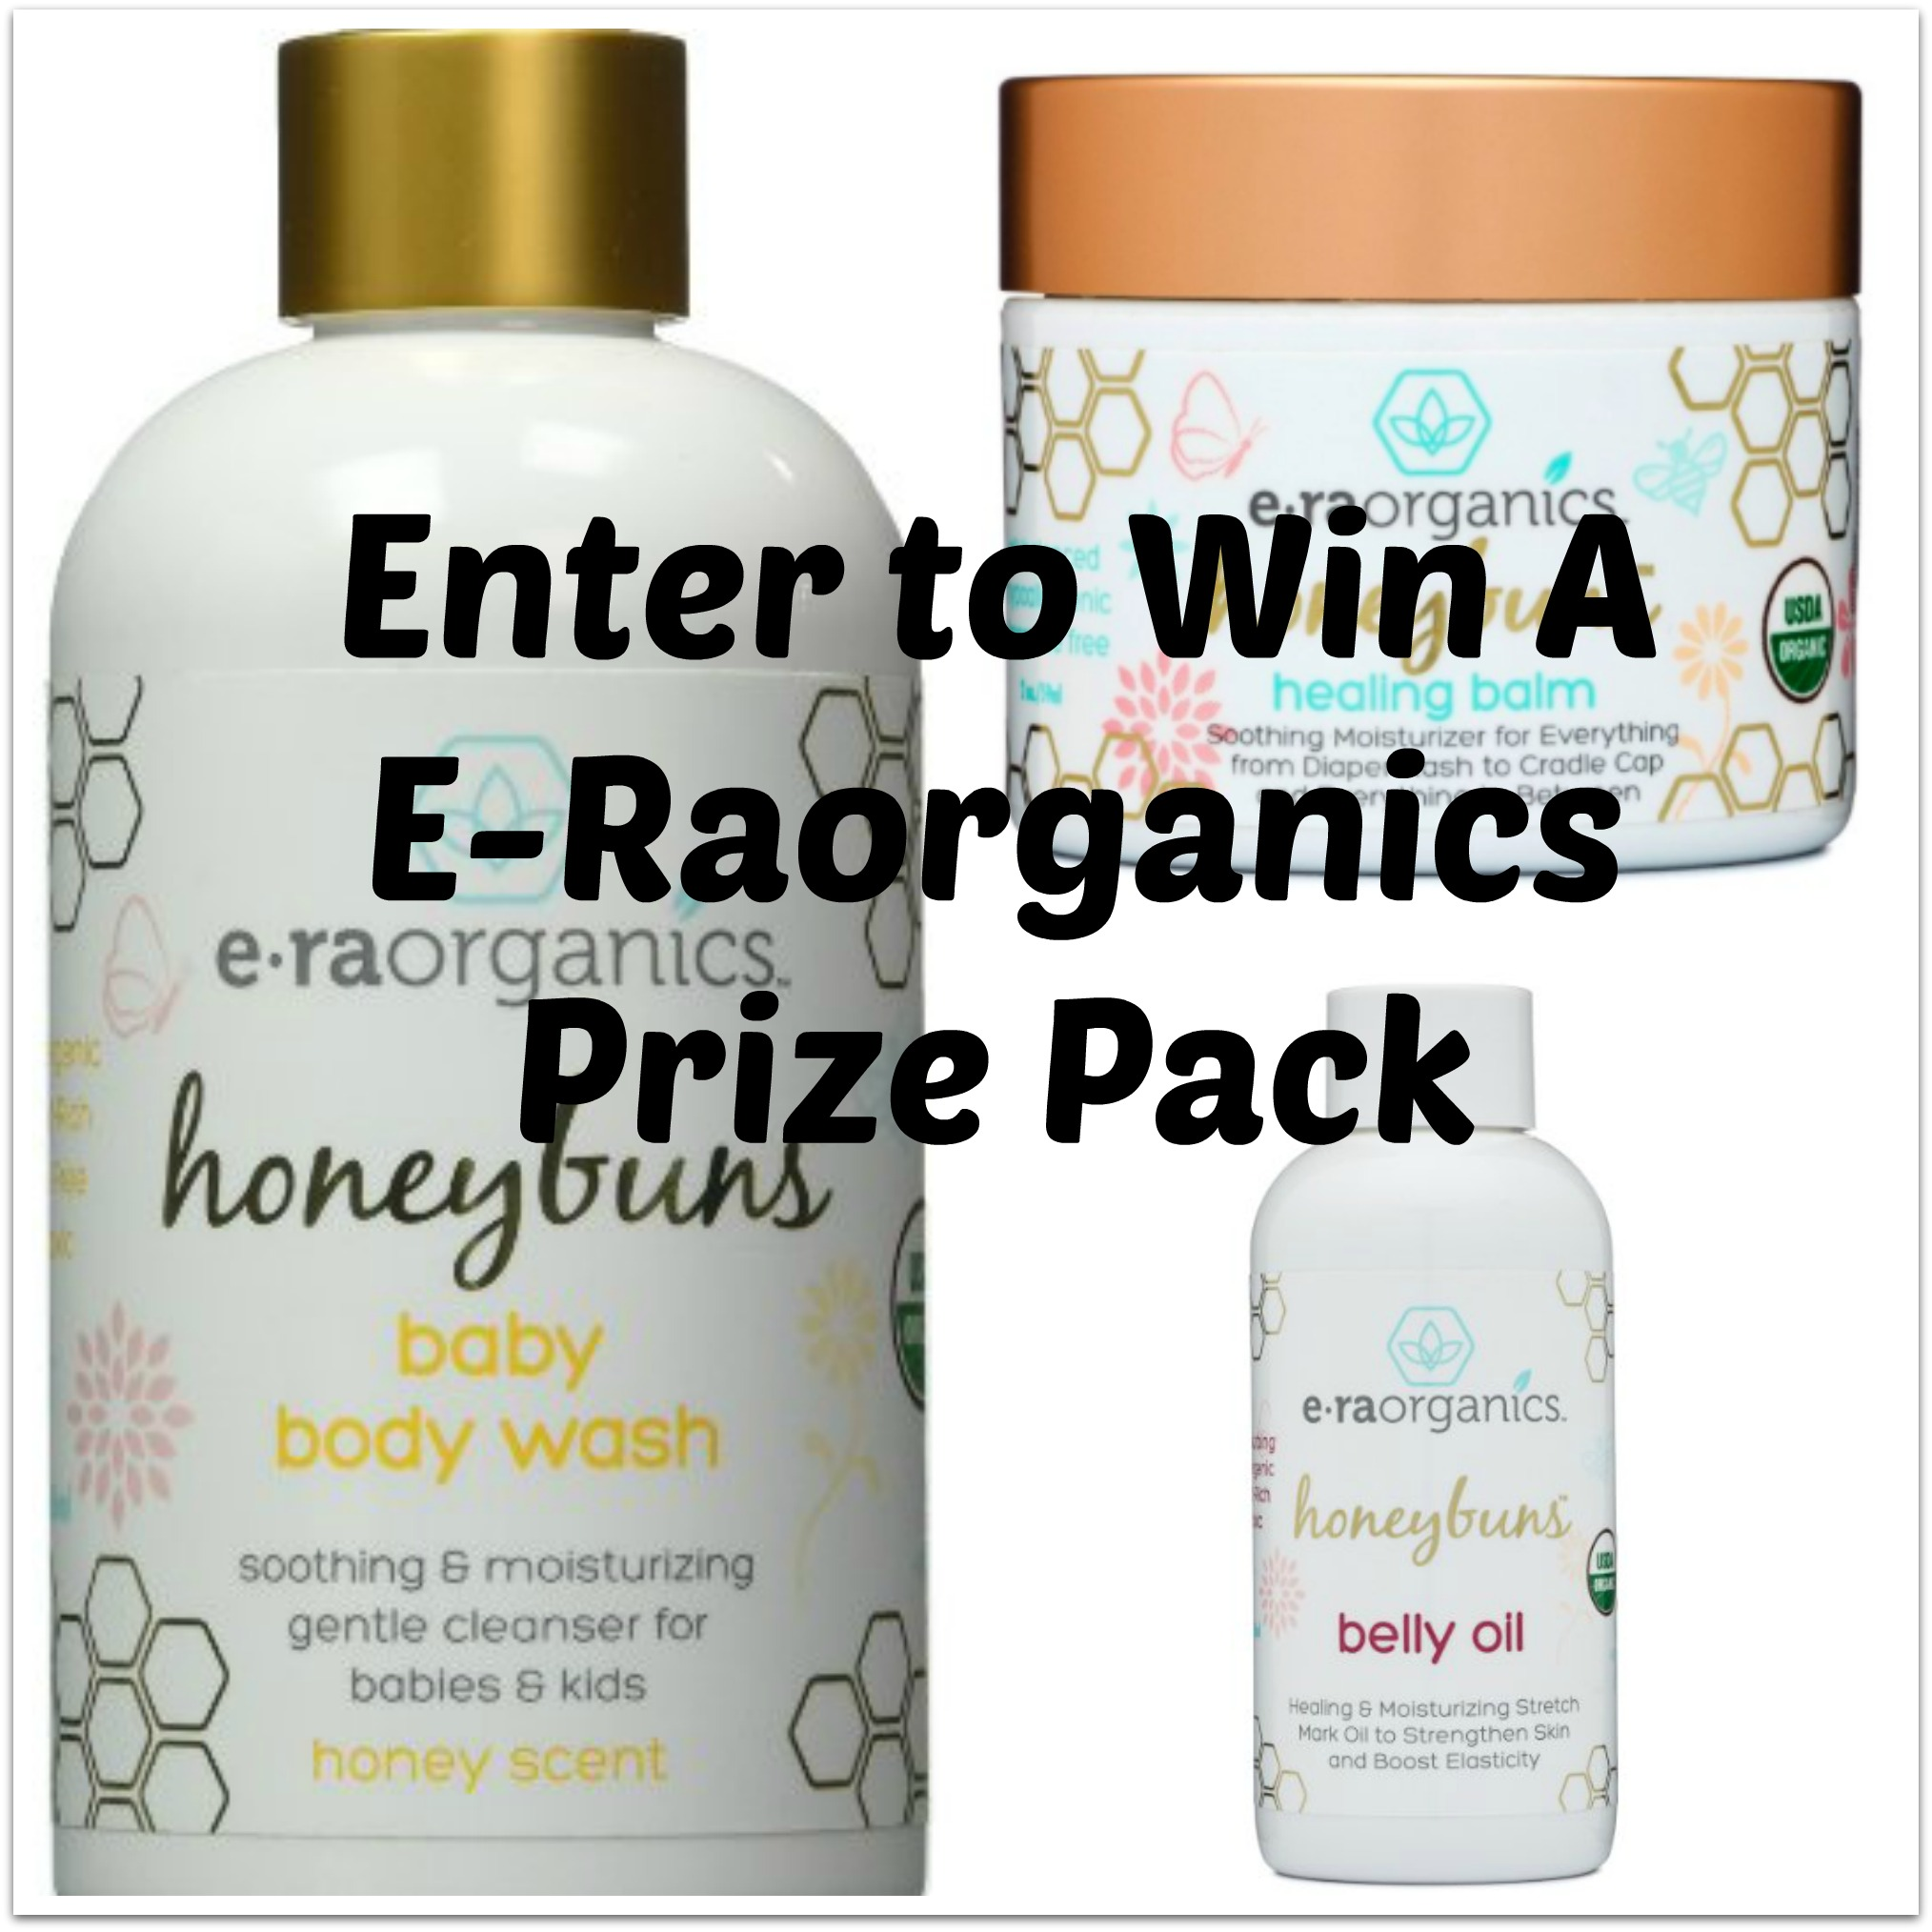 Enter to Win A @eraorganics Prize Pack  #SpringGuide